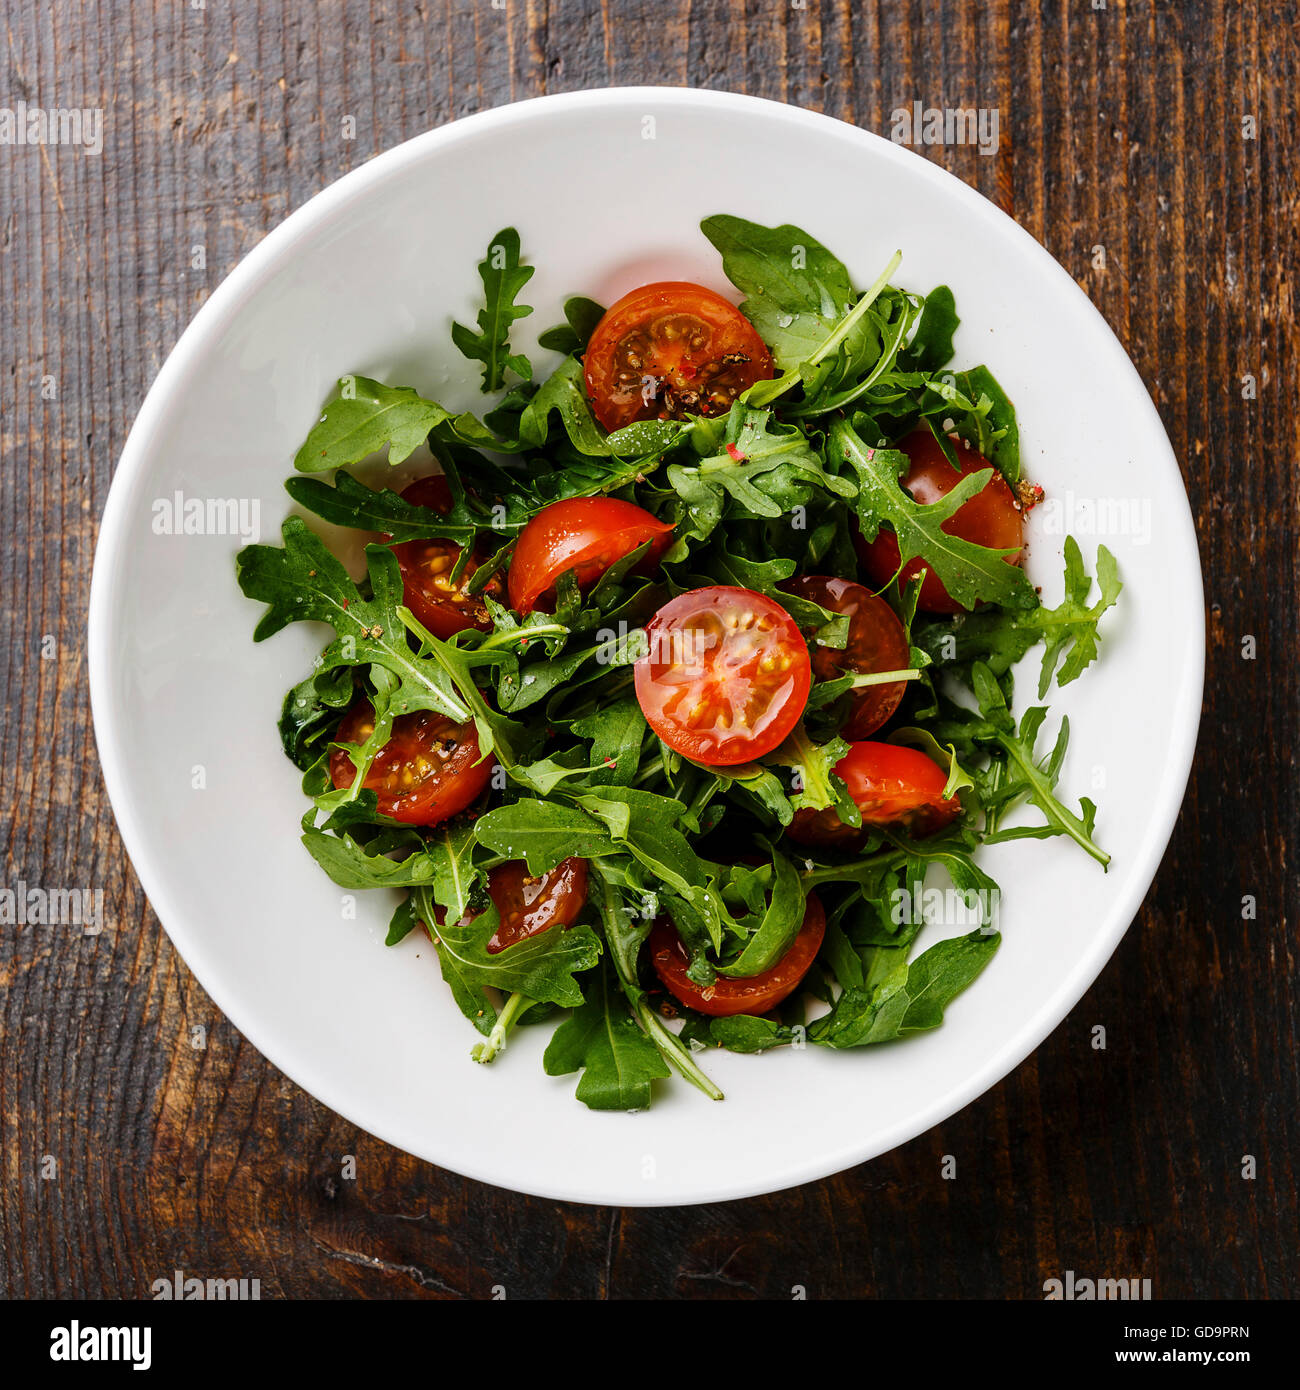 Salad with Cherry tomatoes and Arugula in white bowl on wooden background Stock Photo